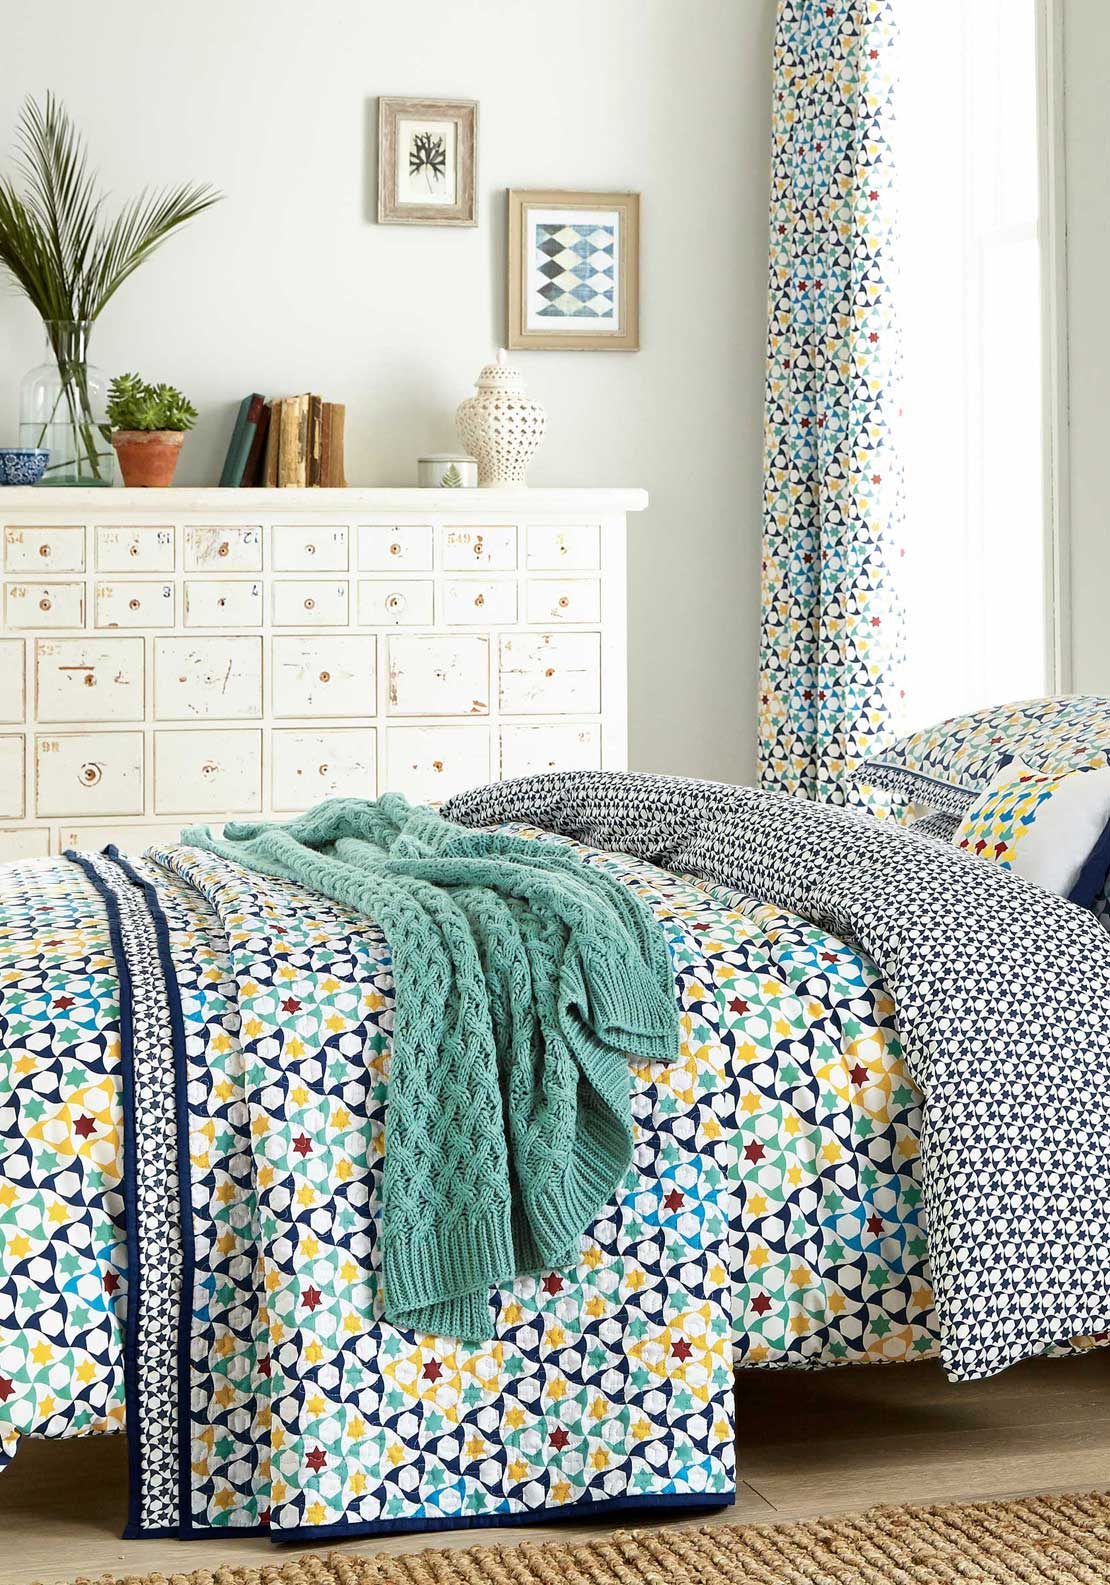 V&A Alhambra Duvet Cover Set, Navy Multi